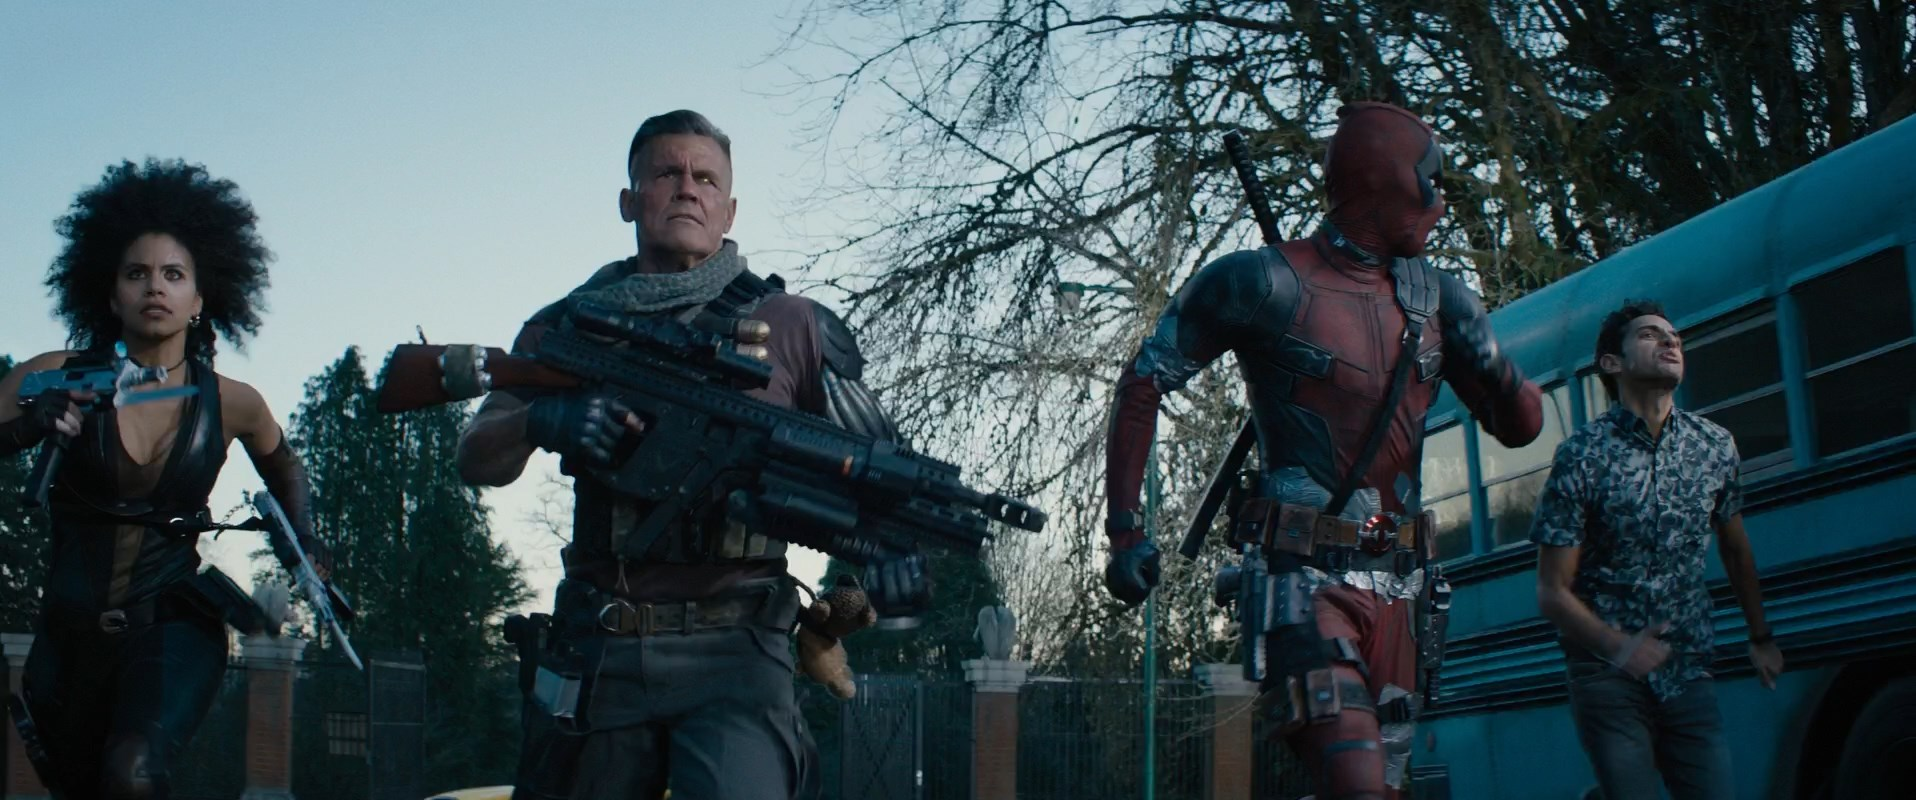 Once Upon a Deadpool (2018) | WEBDL | 1080p | Lat | Eng